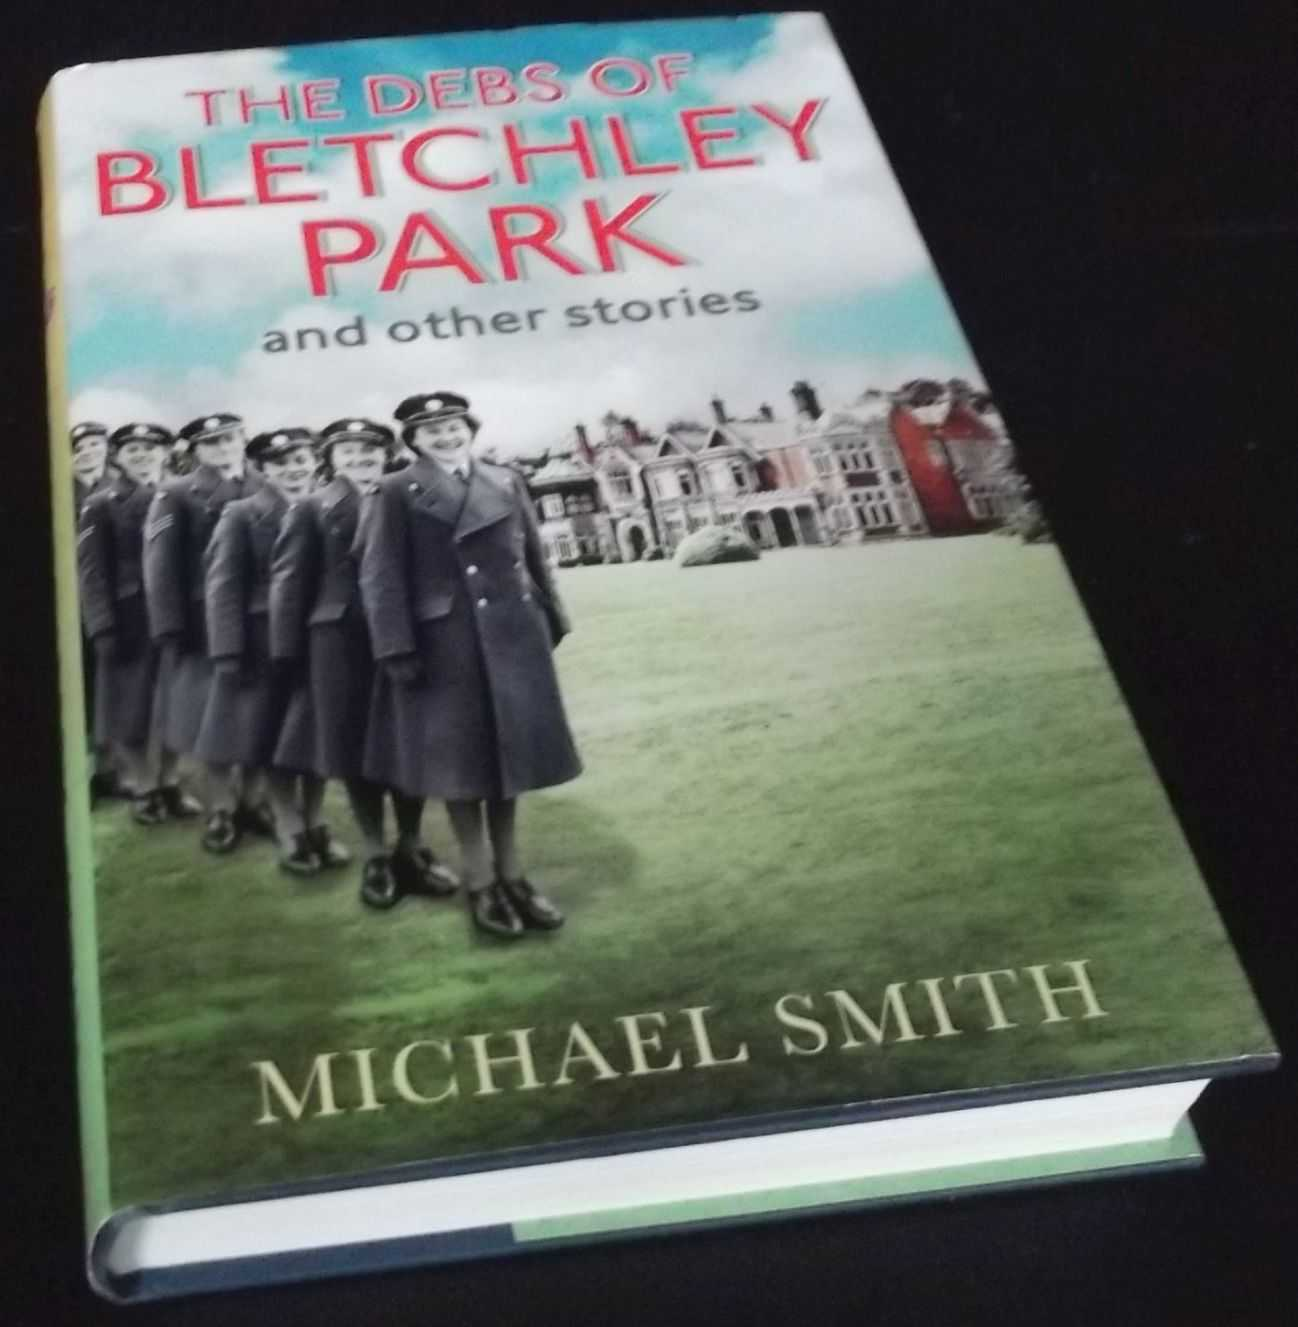 MICHAEL SMITH - The Debs of Bletchley Park and Other Stories